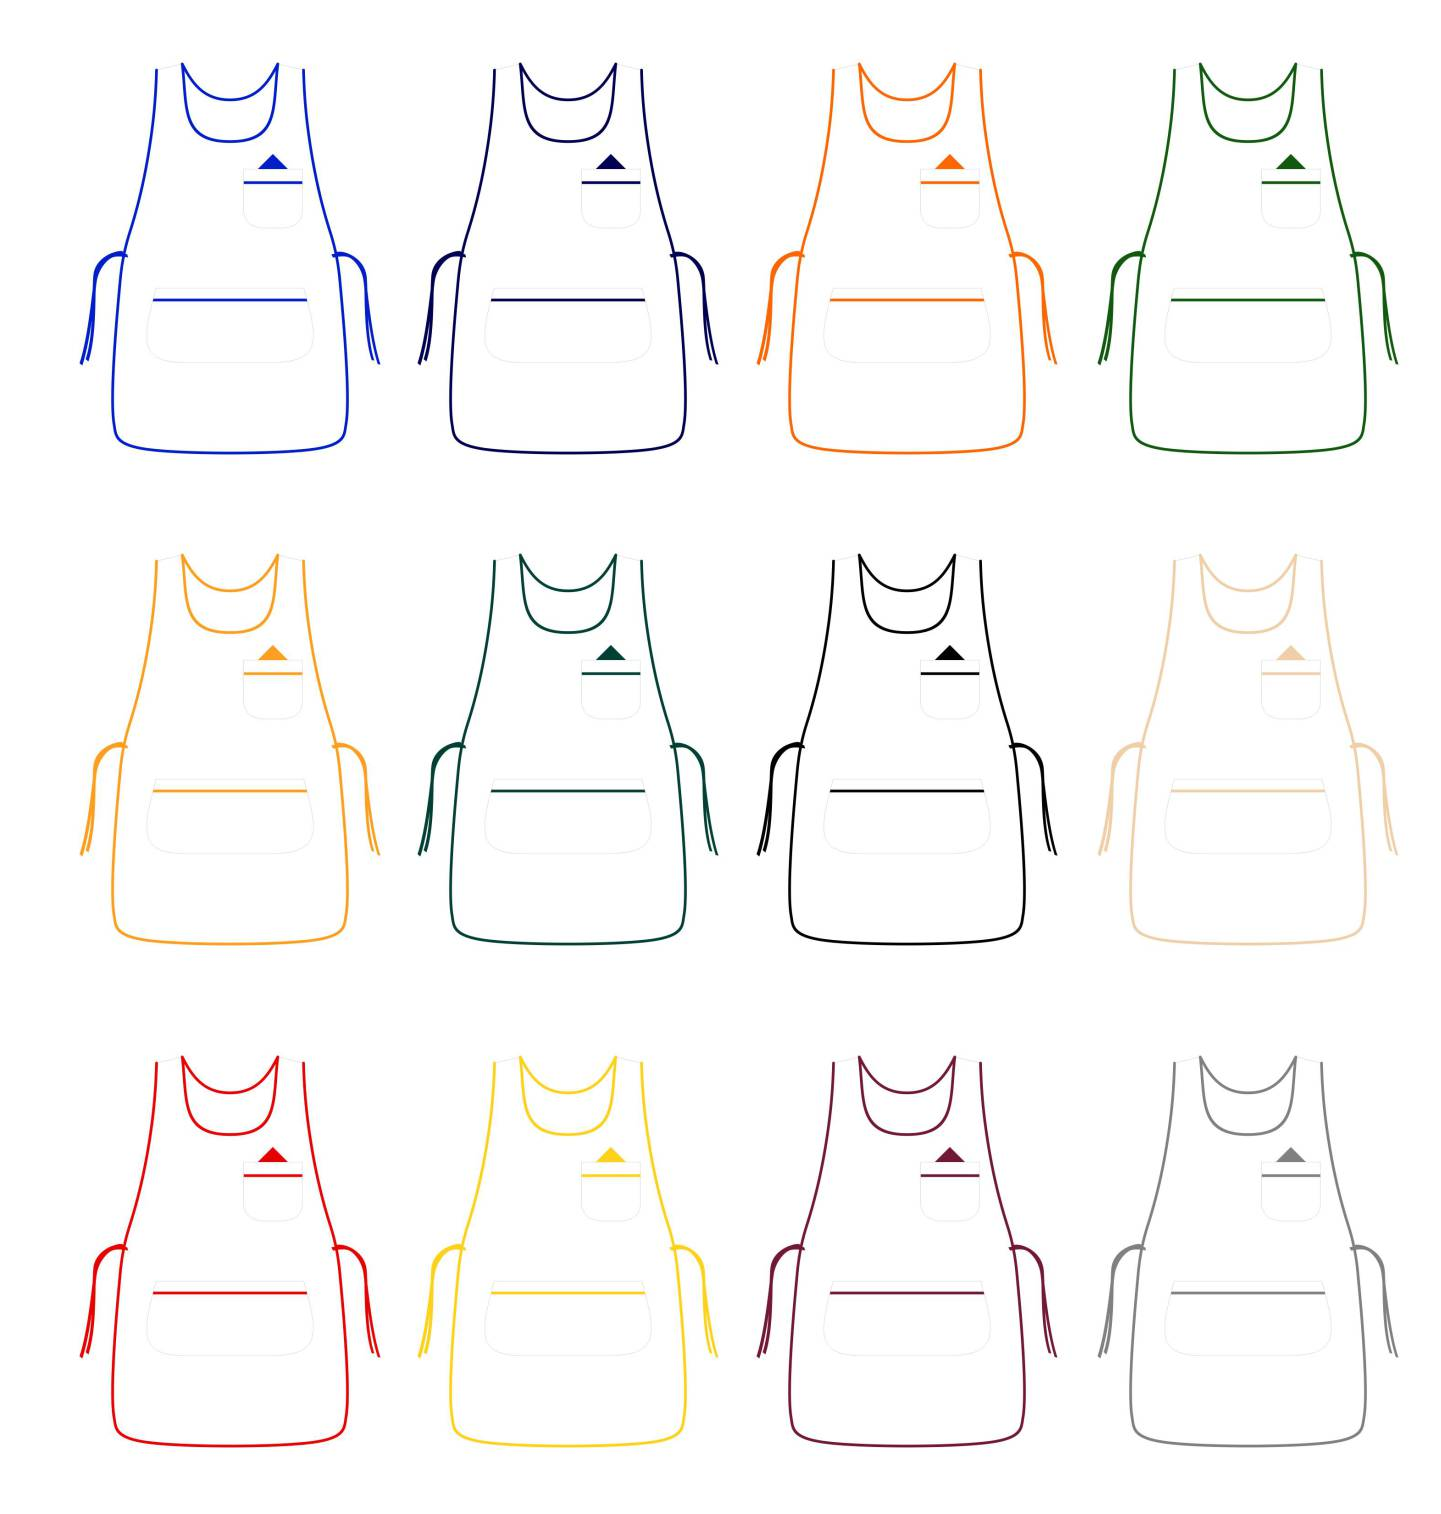 White tabard apron